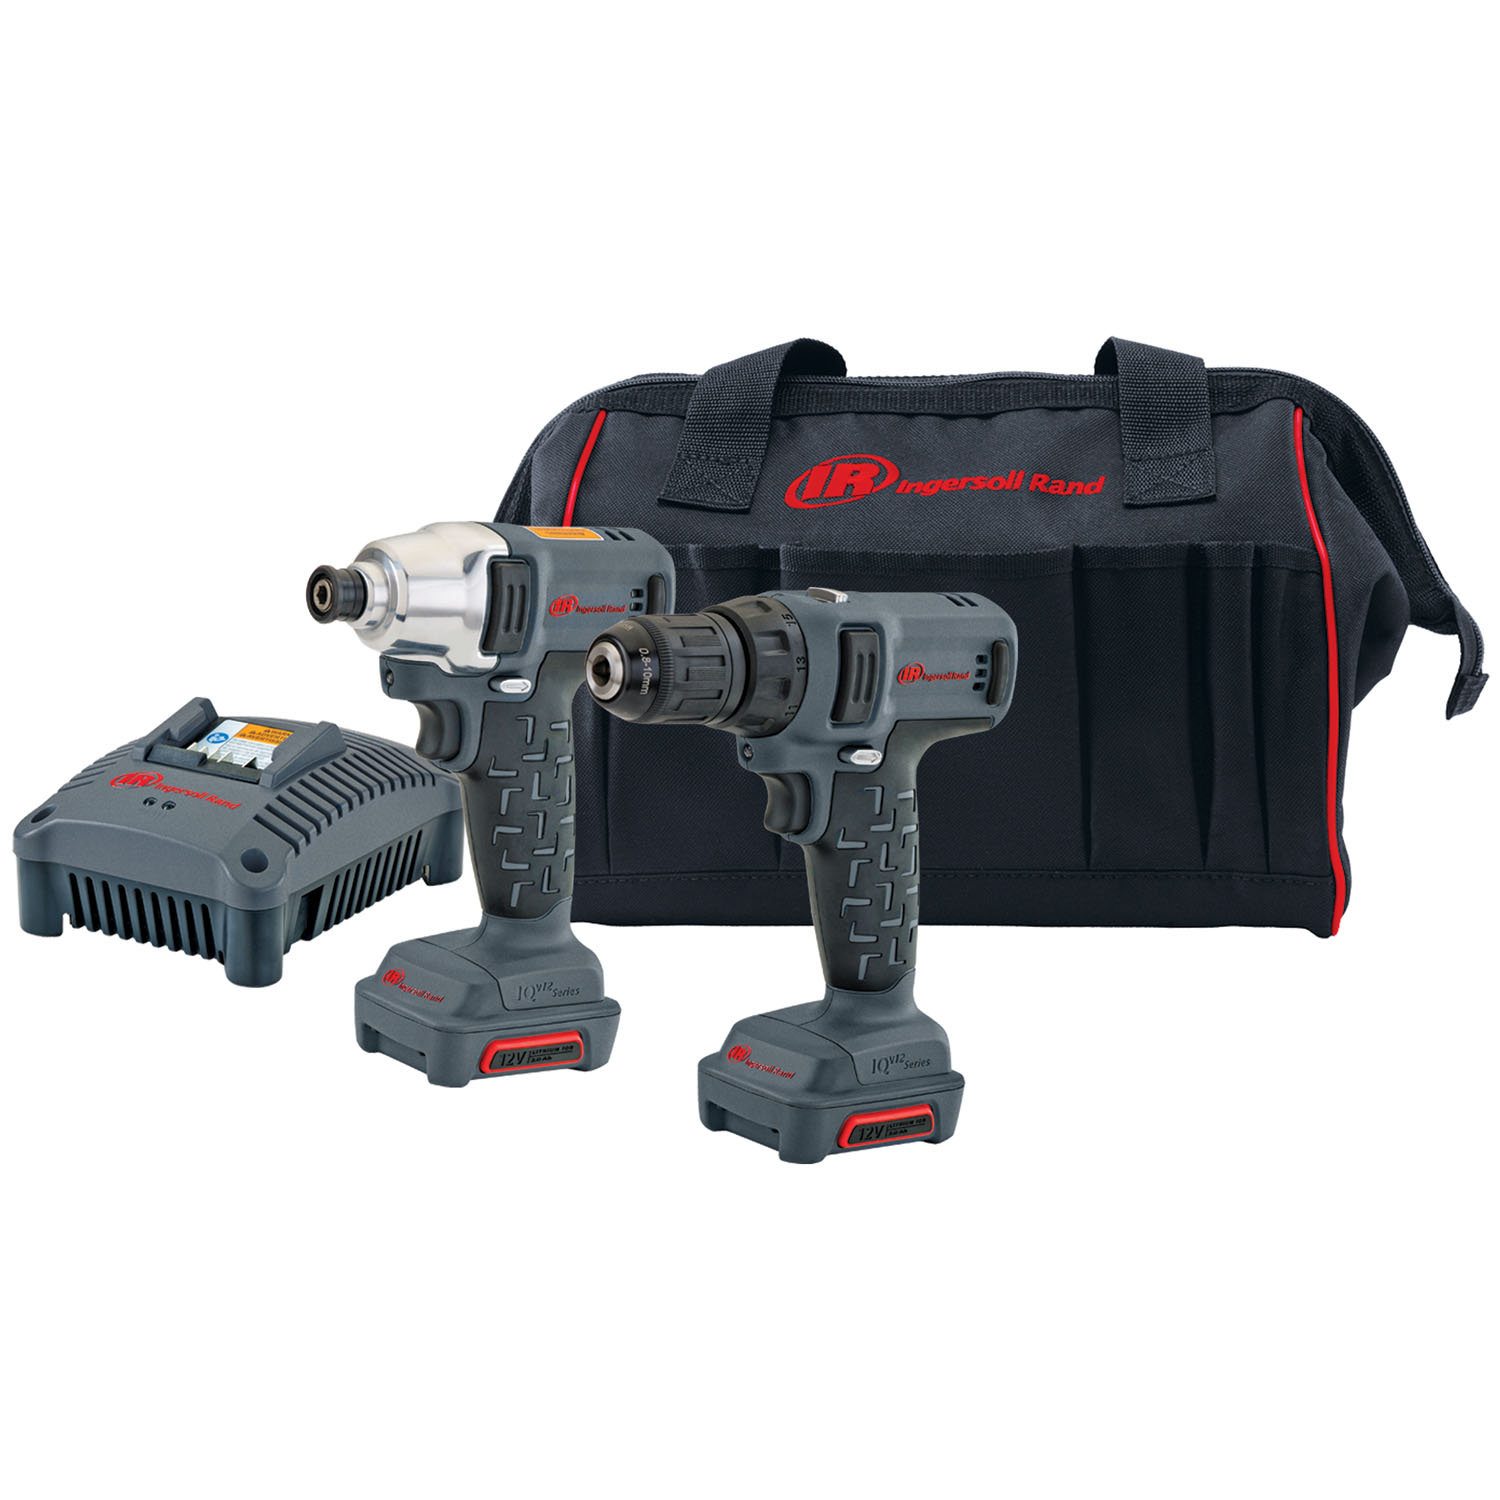 Ingersoll Rand 12V Cordless Impact Driver and Drill Driver Combo Kit